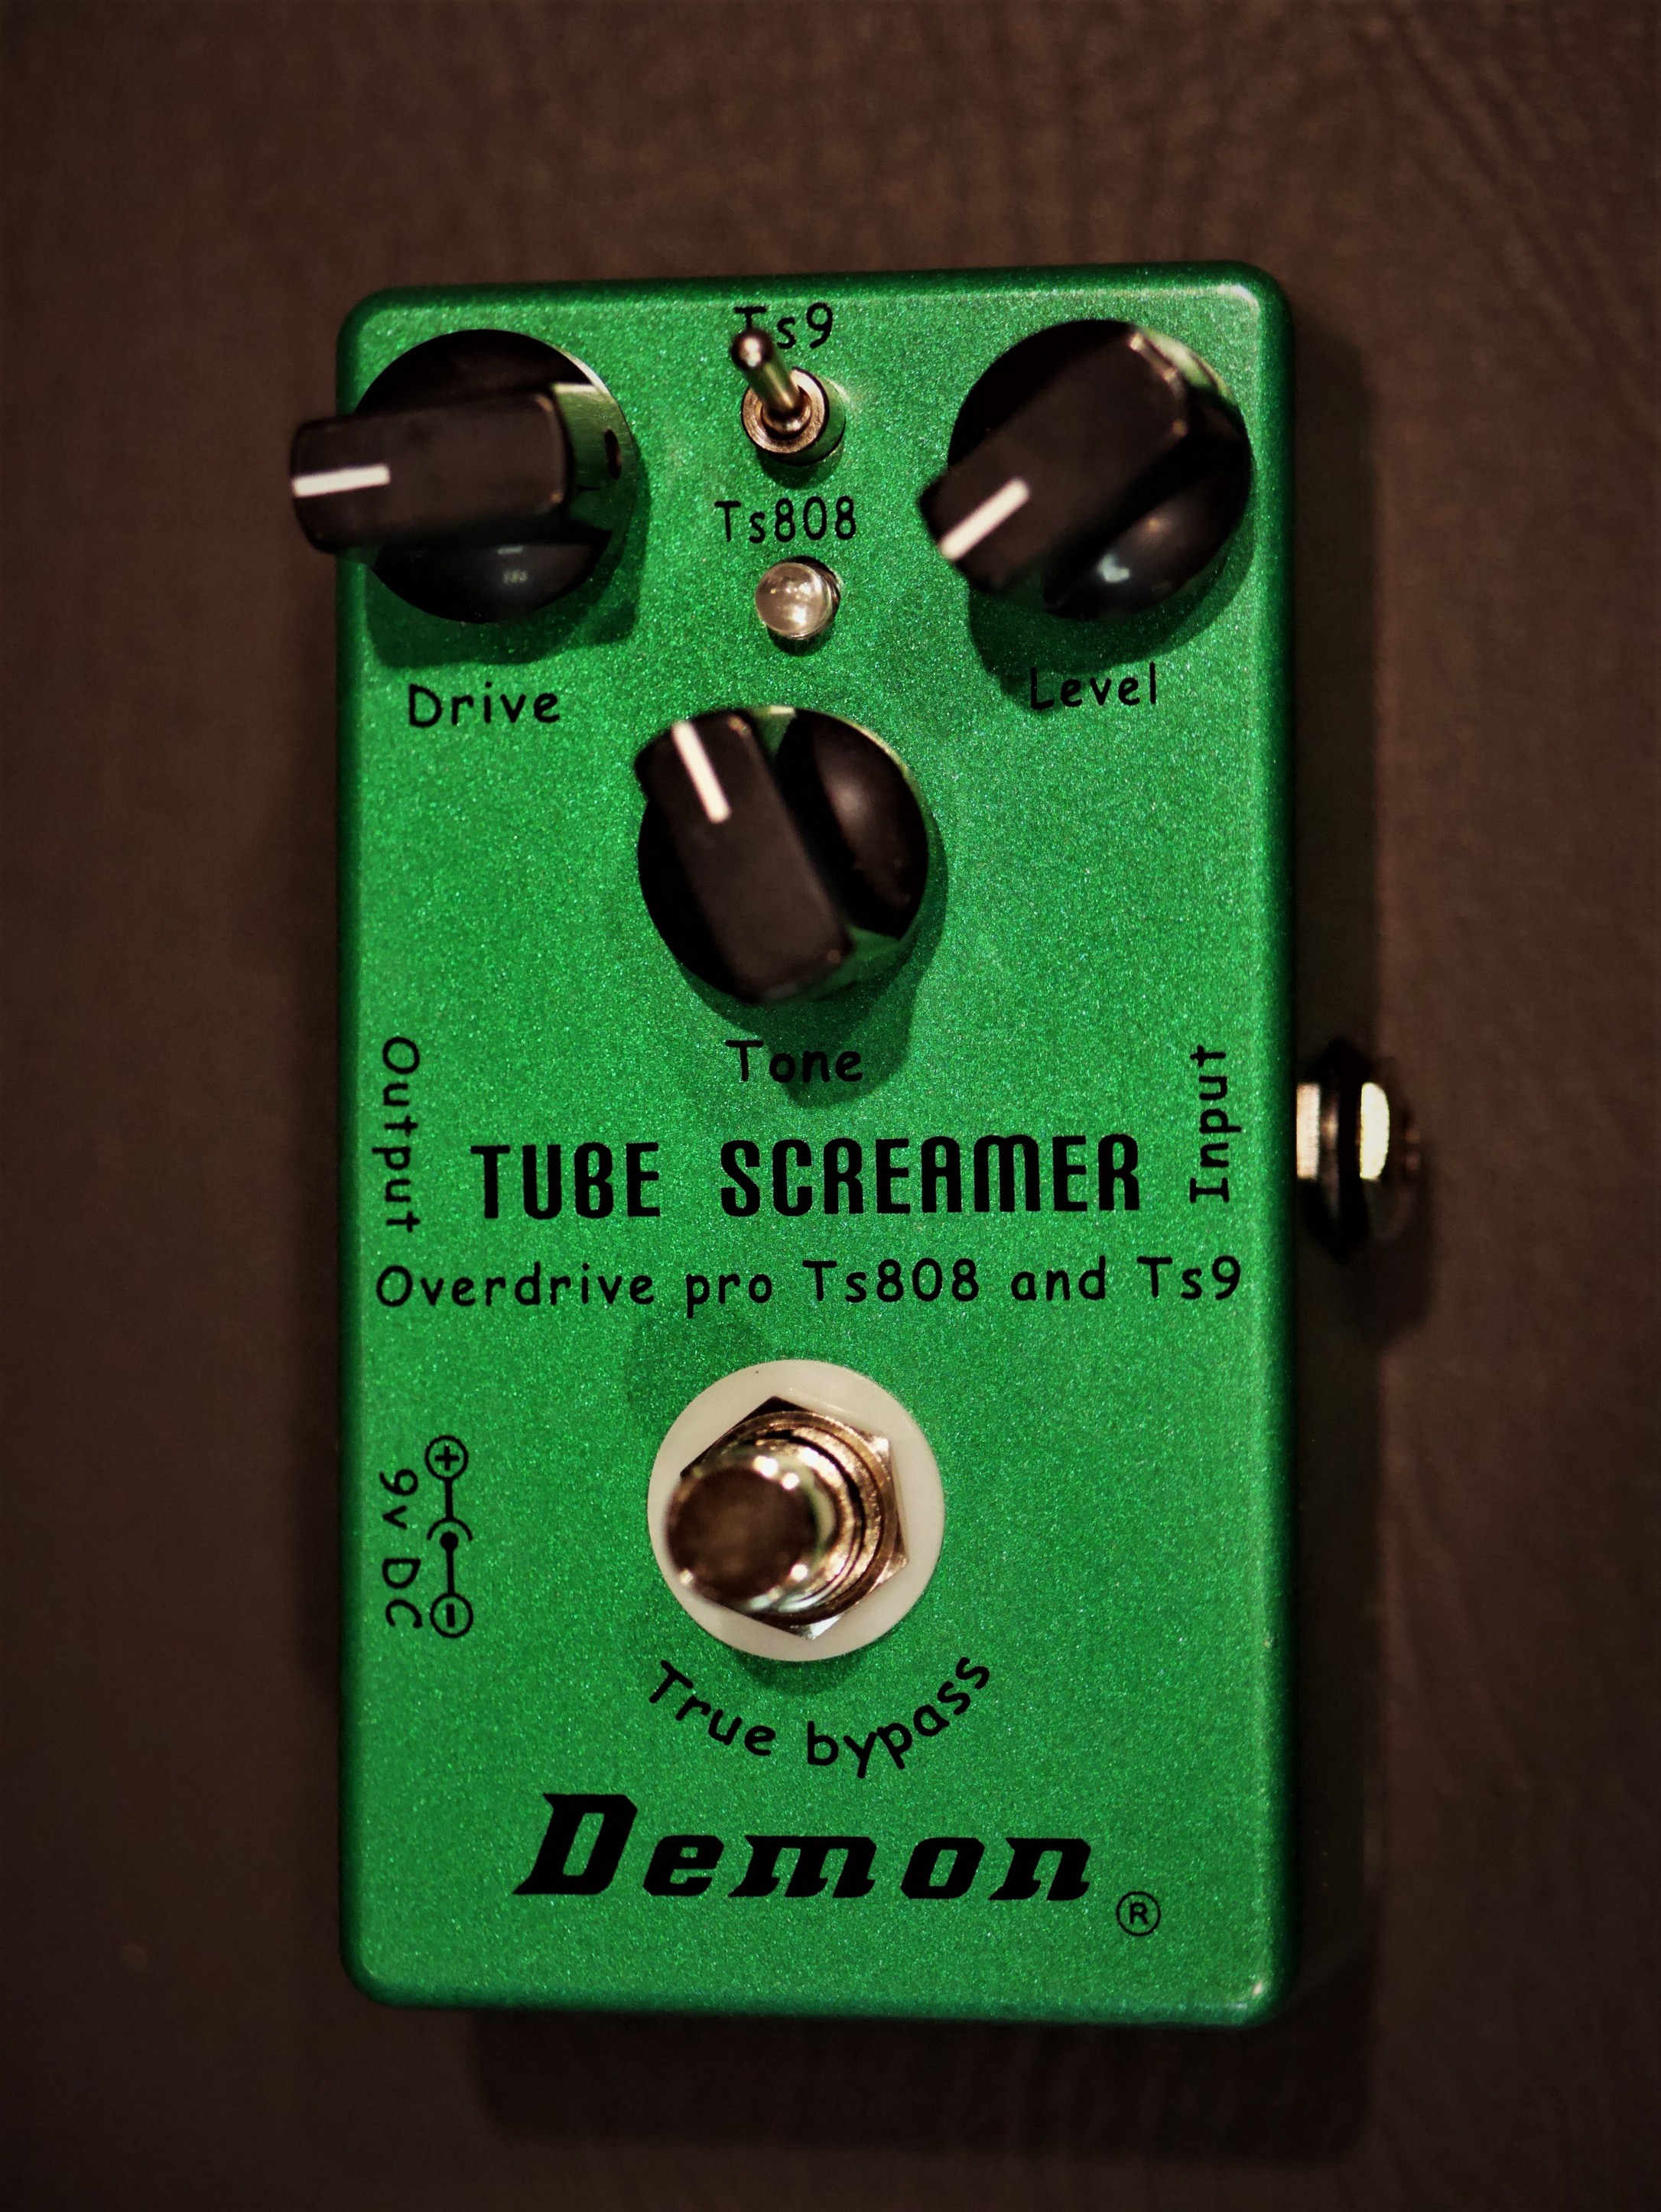 studio la boite a meuh - Demon tube screamer